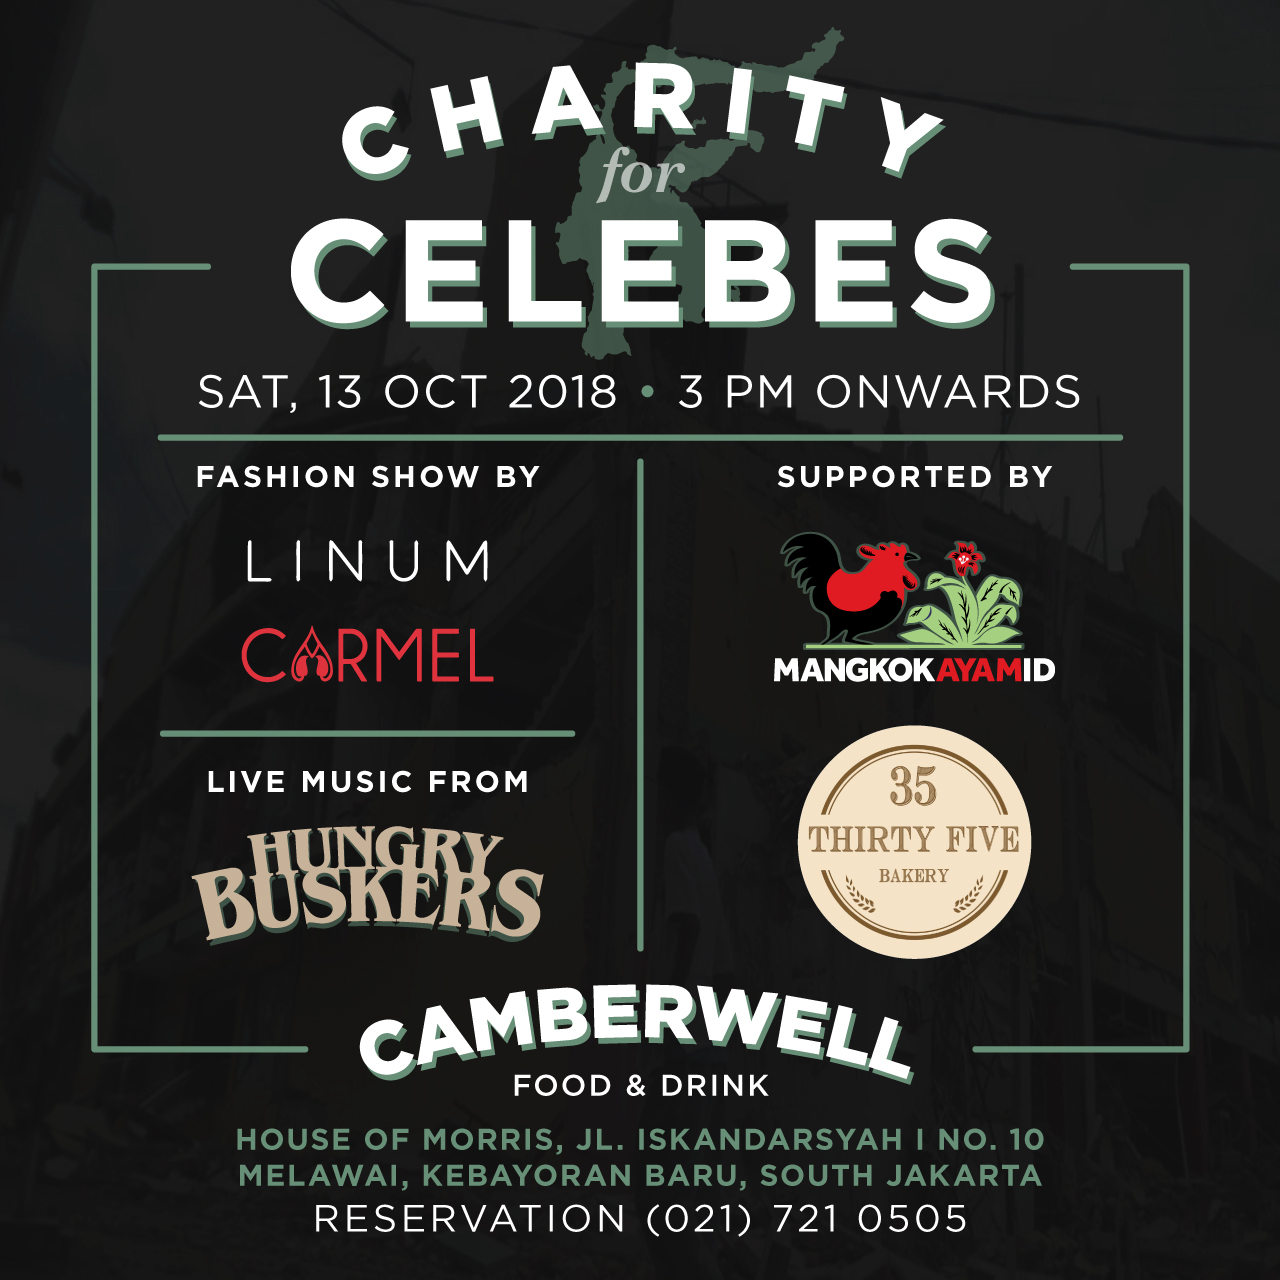 charity-for-celebes---reservation.jpg